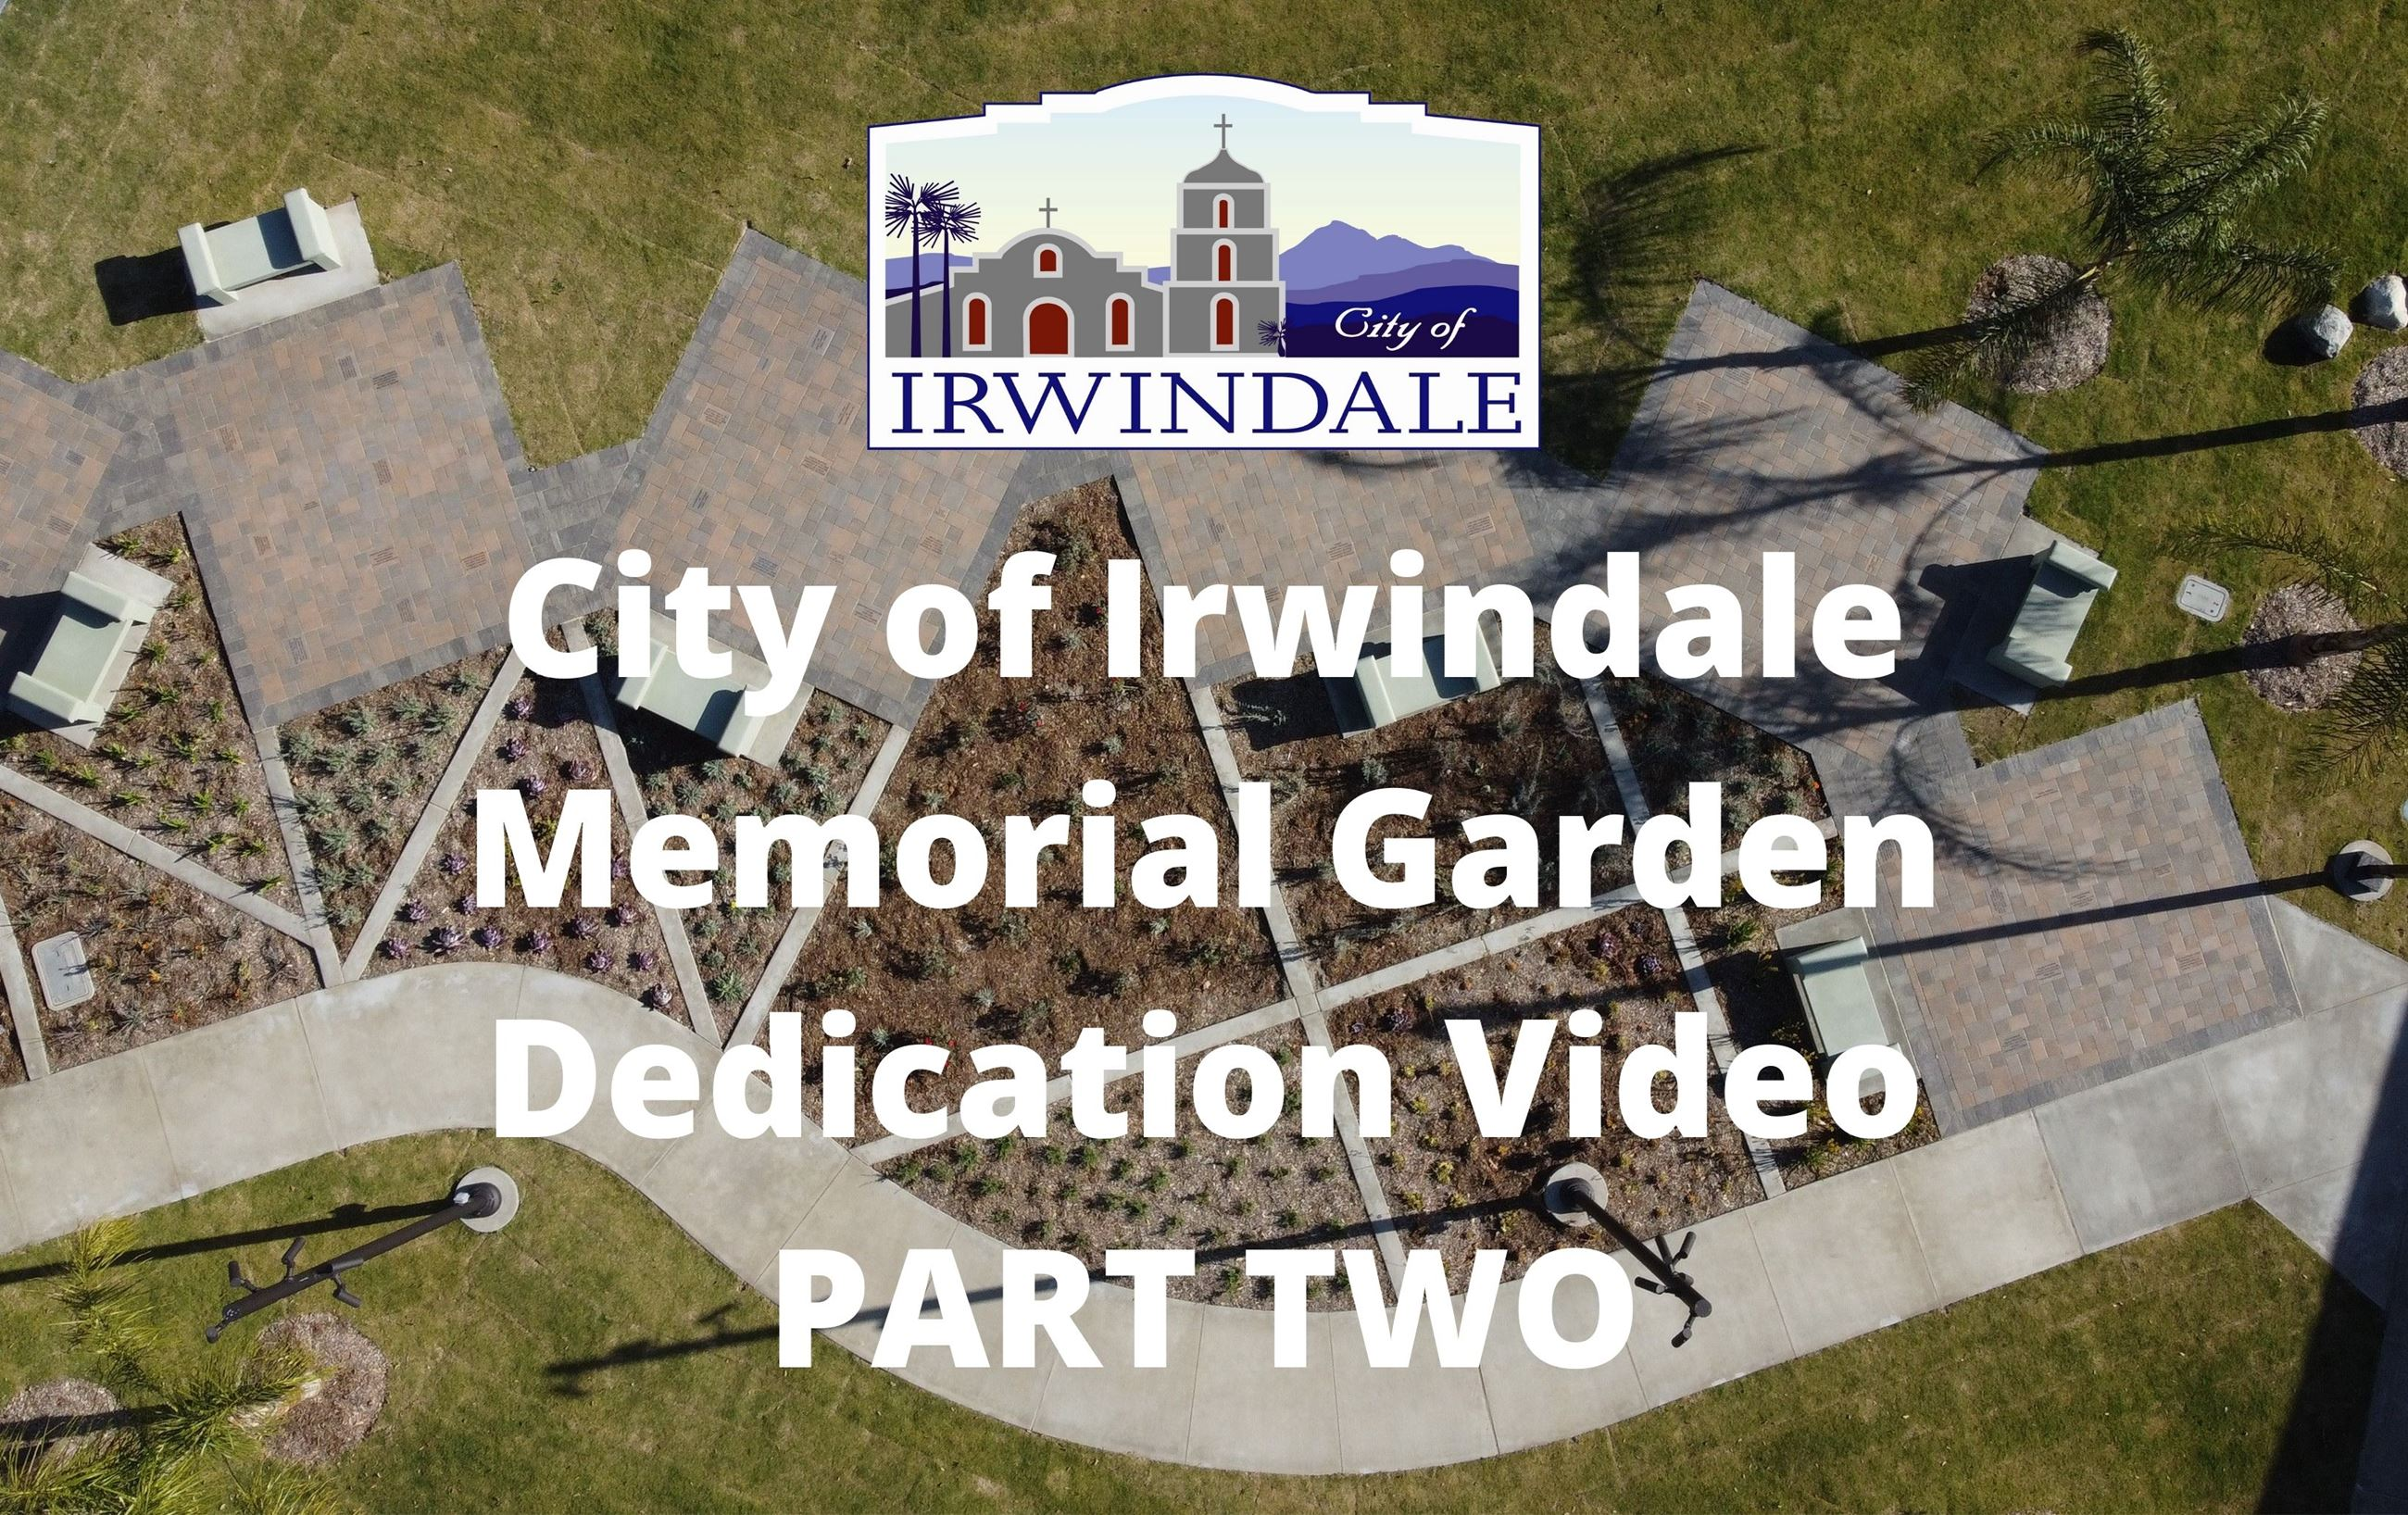 City of Irwindale Memorial Garden Dedication Video Part Two